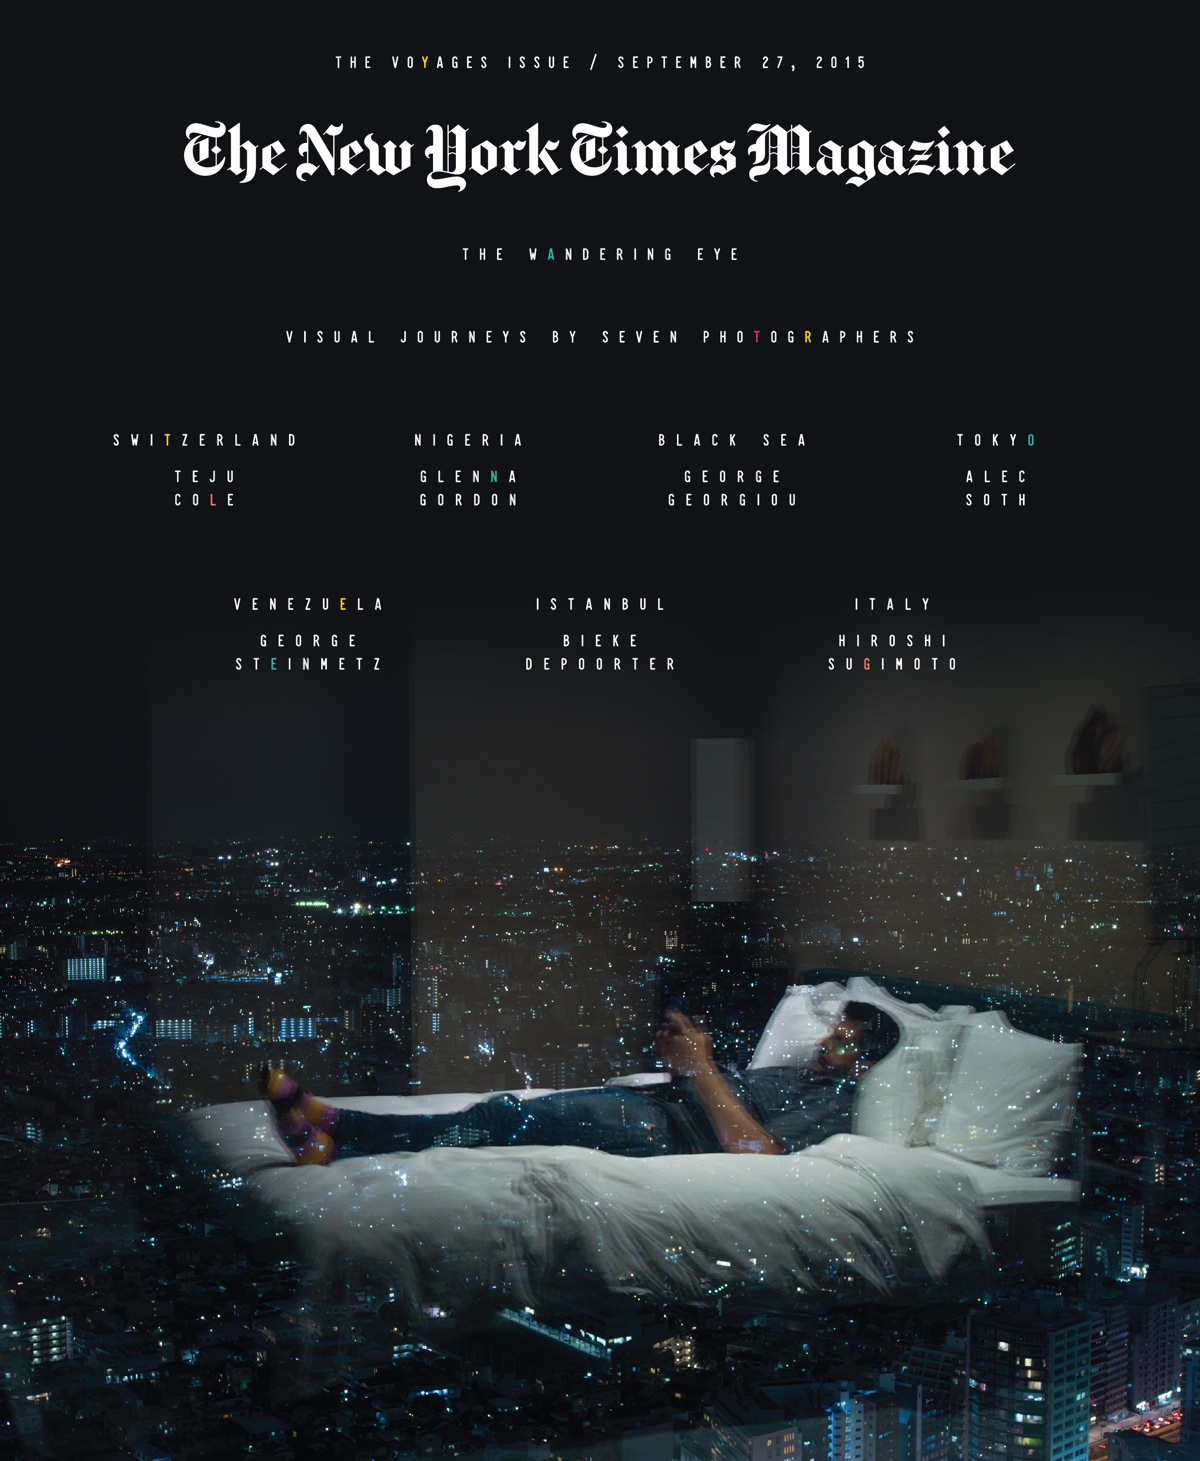 Voyages issue cover, designed by Willey, using a self-portrait taken by Alec Soth in his Tokyo hotel room